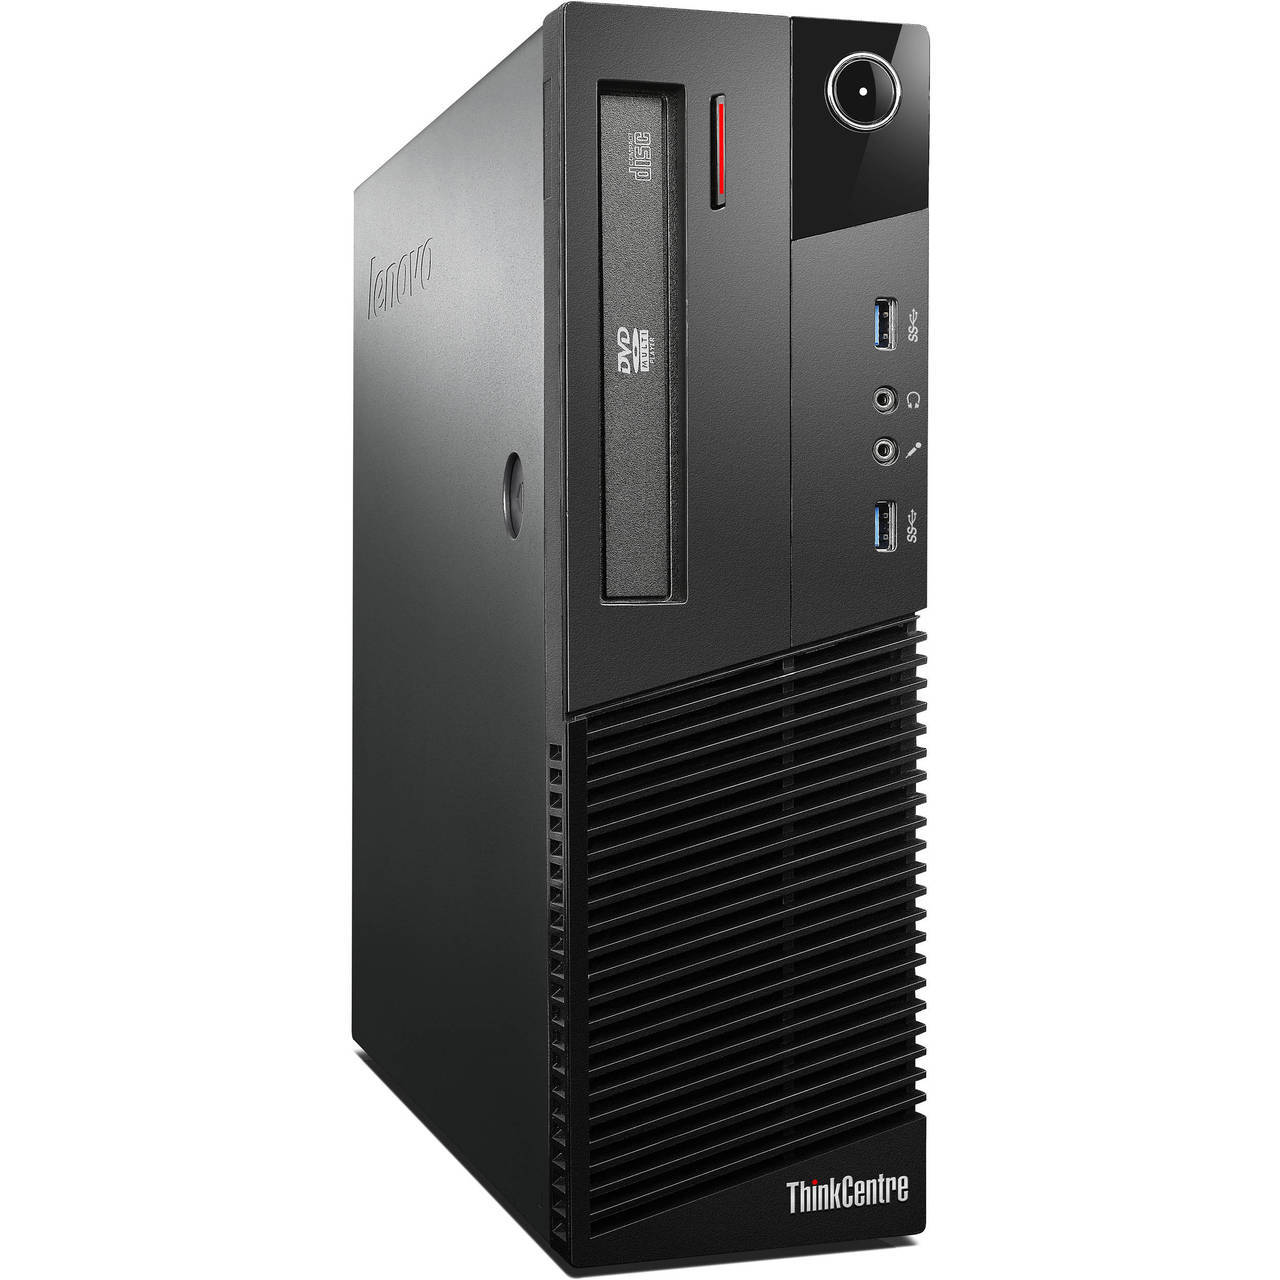 REFURBISHED LENOVO PC M83 SFF I3-4130 4GB 500GB DVDRW WIN 10 PRO